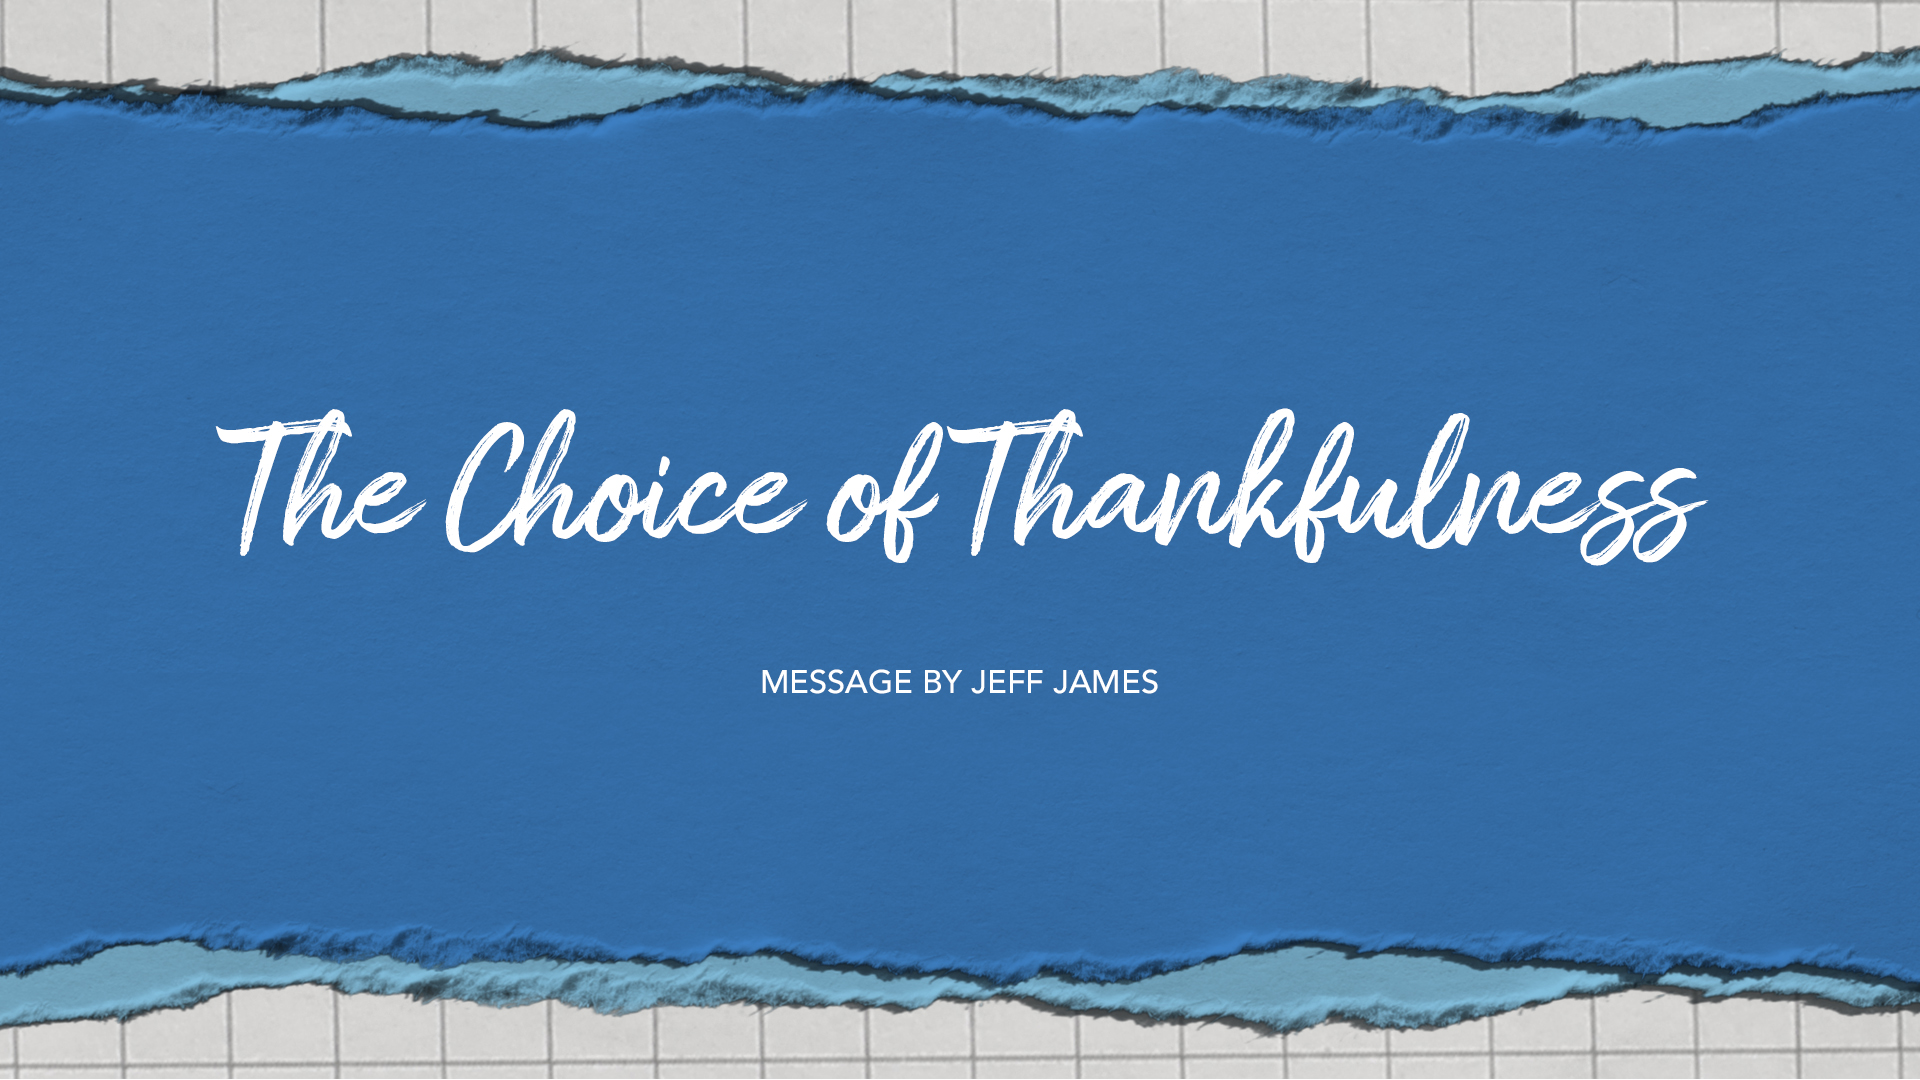 The Choice of Thankfulness